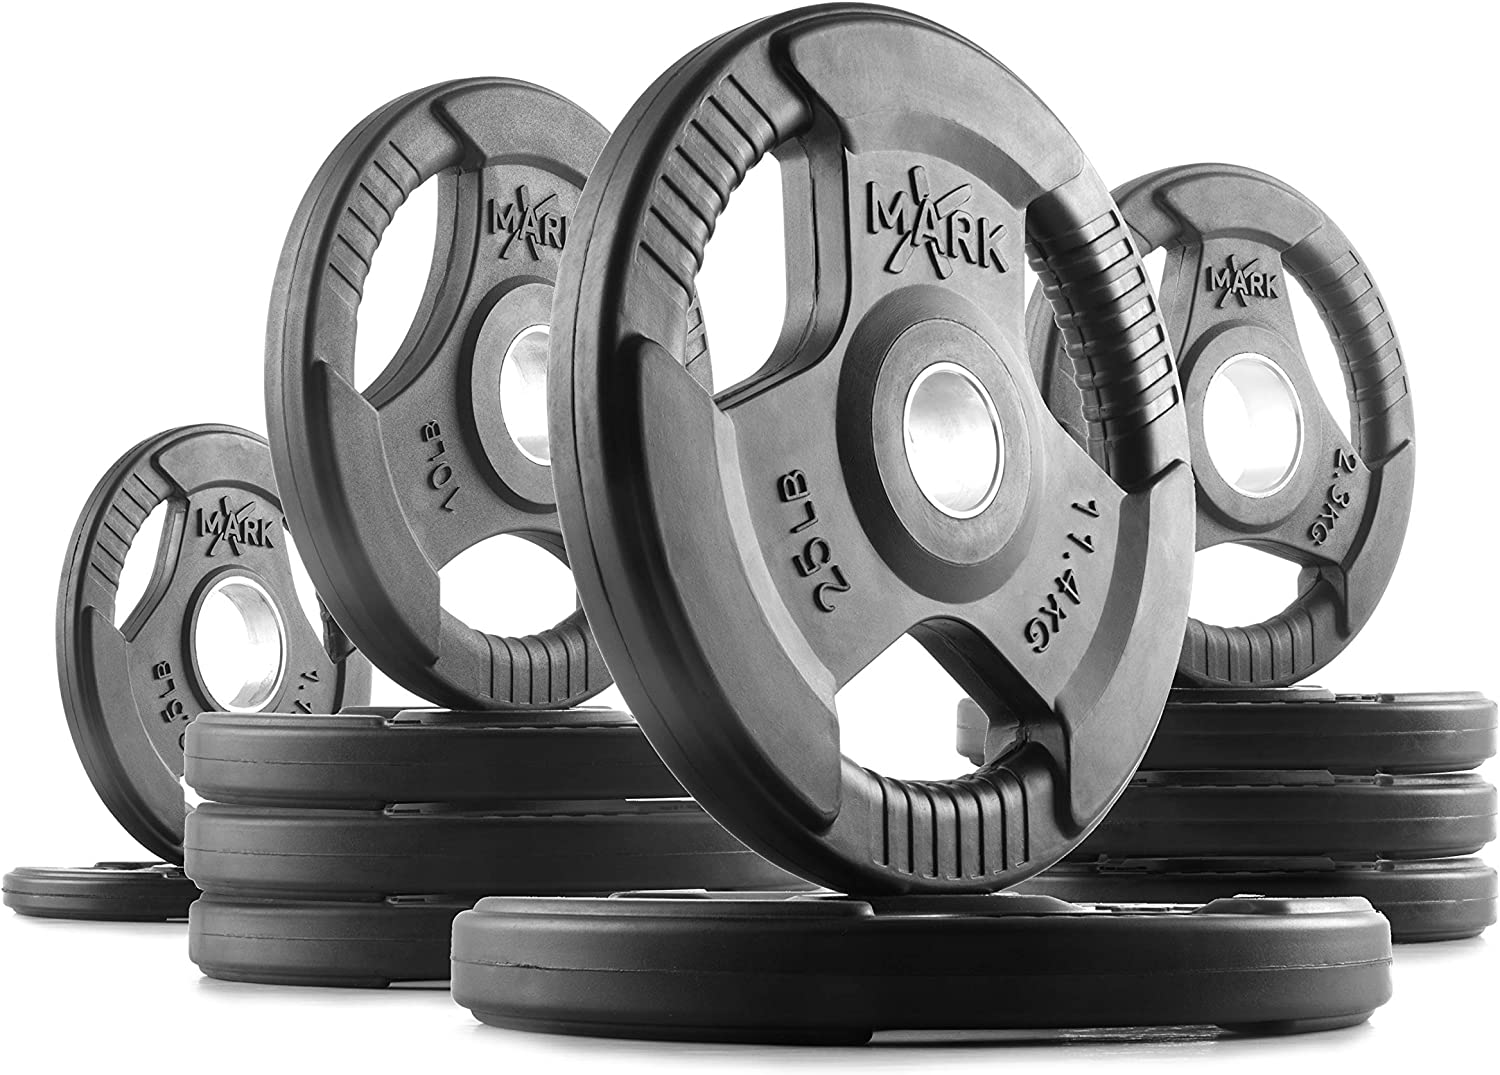 XMark Fitness Olympic Weigh Plates - BEST OVERALL